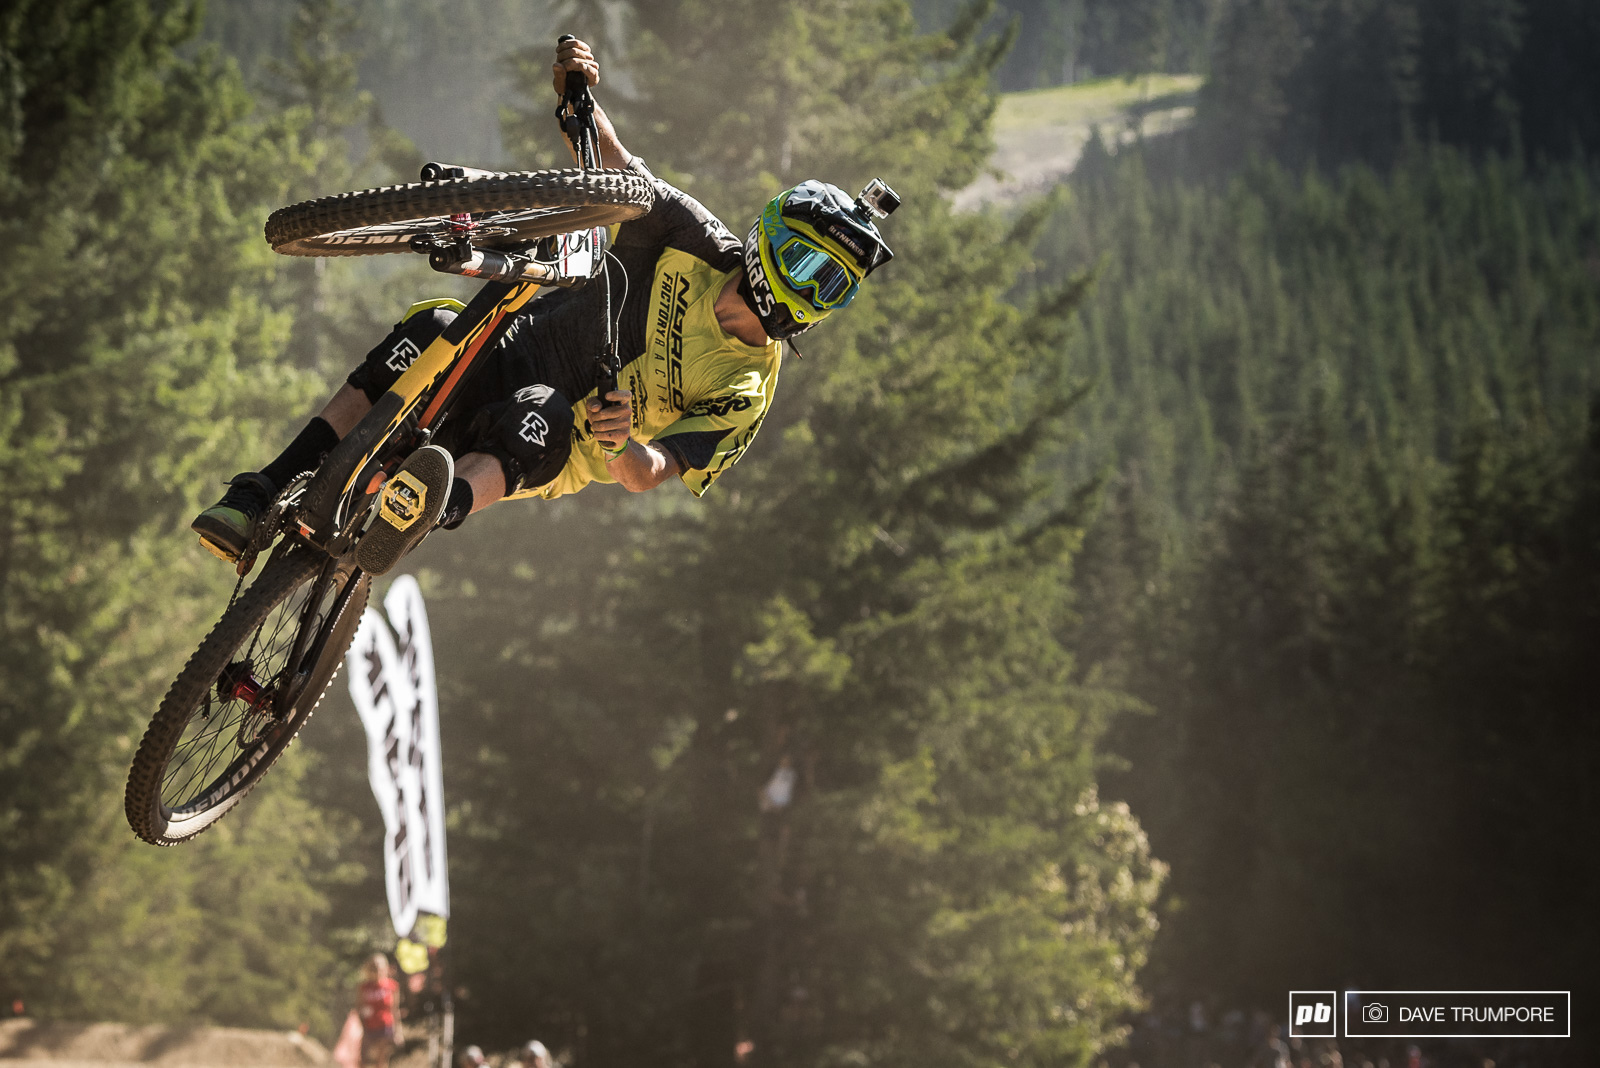 Sam Blenkinsop has a style all his own. He hangs way off the bike on the way up and then rotates the back end around in what almost looks like slow motion.